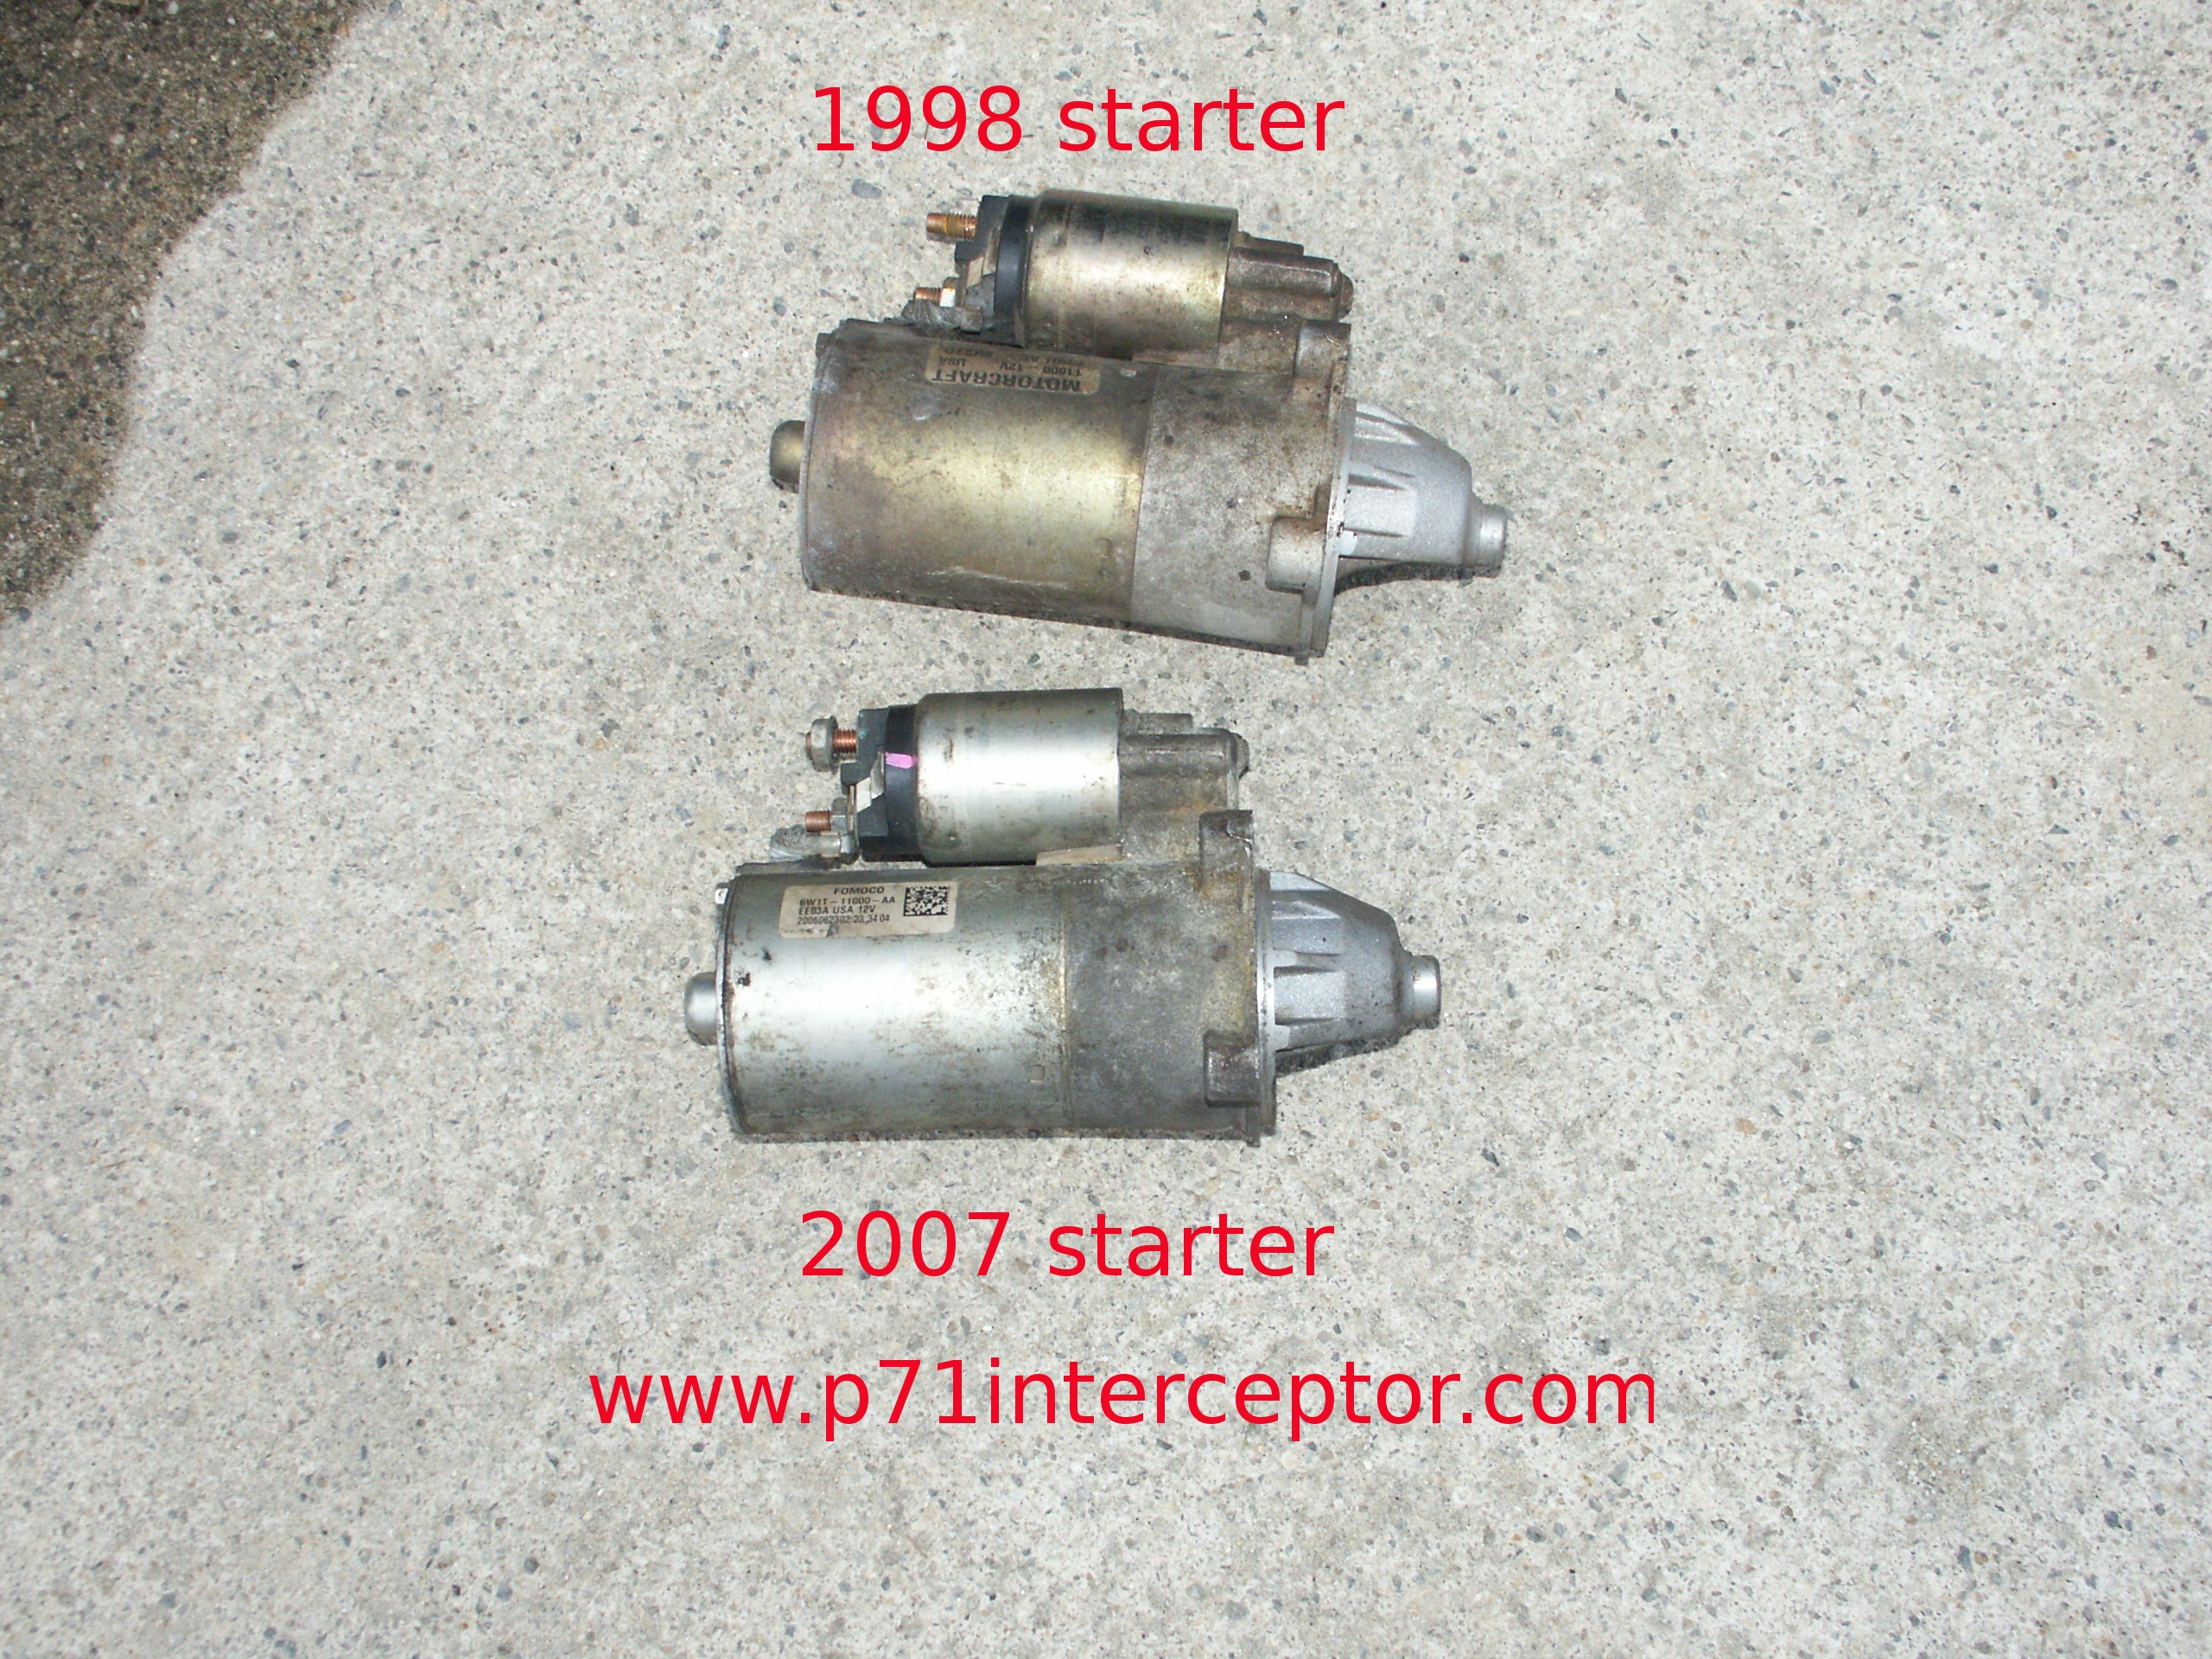 ford crown victoria p71 4 6l 3 bolt starter replacement starting in the 2006 model year ford introduced a new starter motor model 6w1t 11000 aa this starter is nearly identical to the earlier f75u 11000 ac